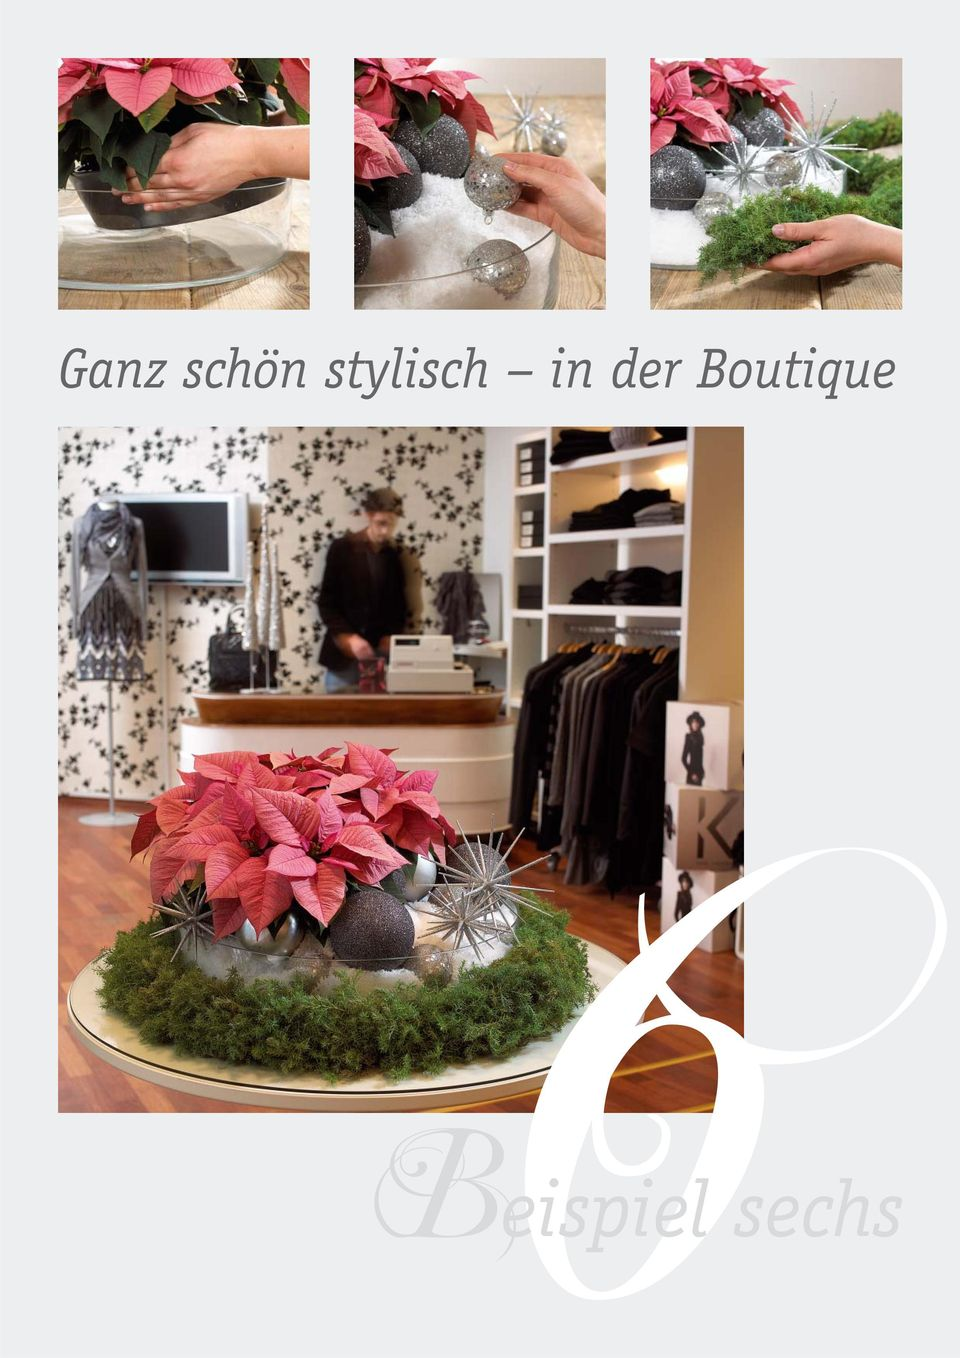 der Boutique